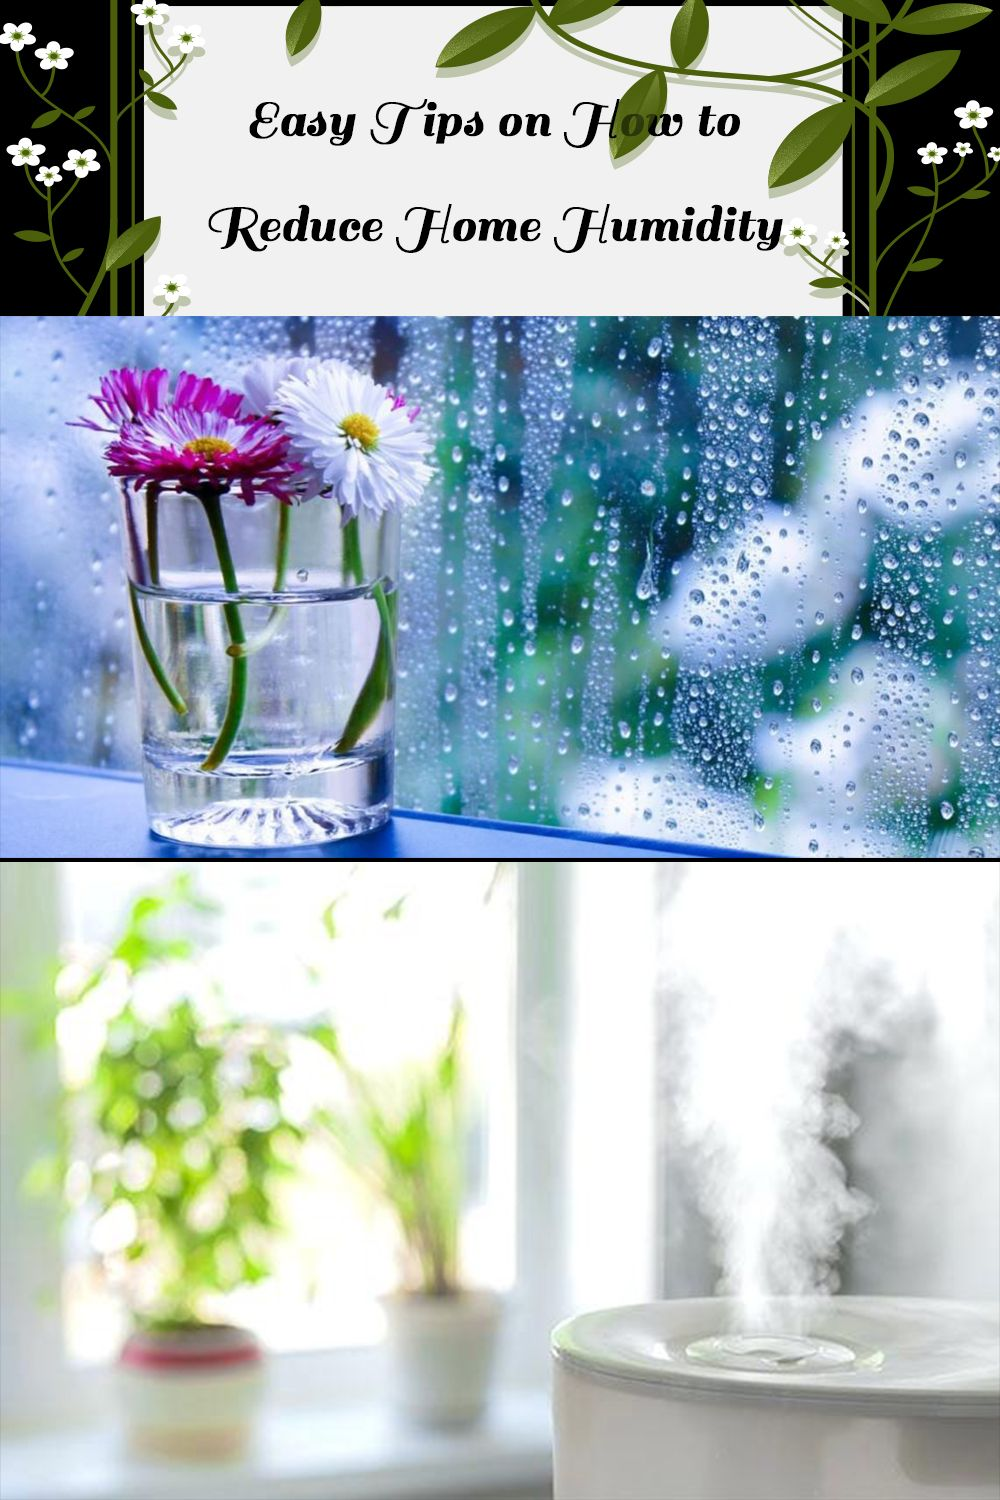 Is Humidity Creating An Uncomfortable Environment At Home Or Work You Might Want To Reduce By Trying These Simple Tips